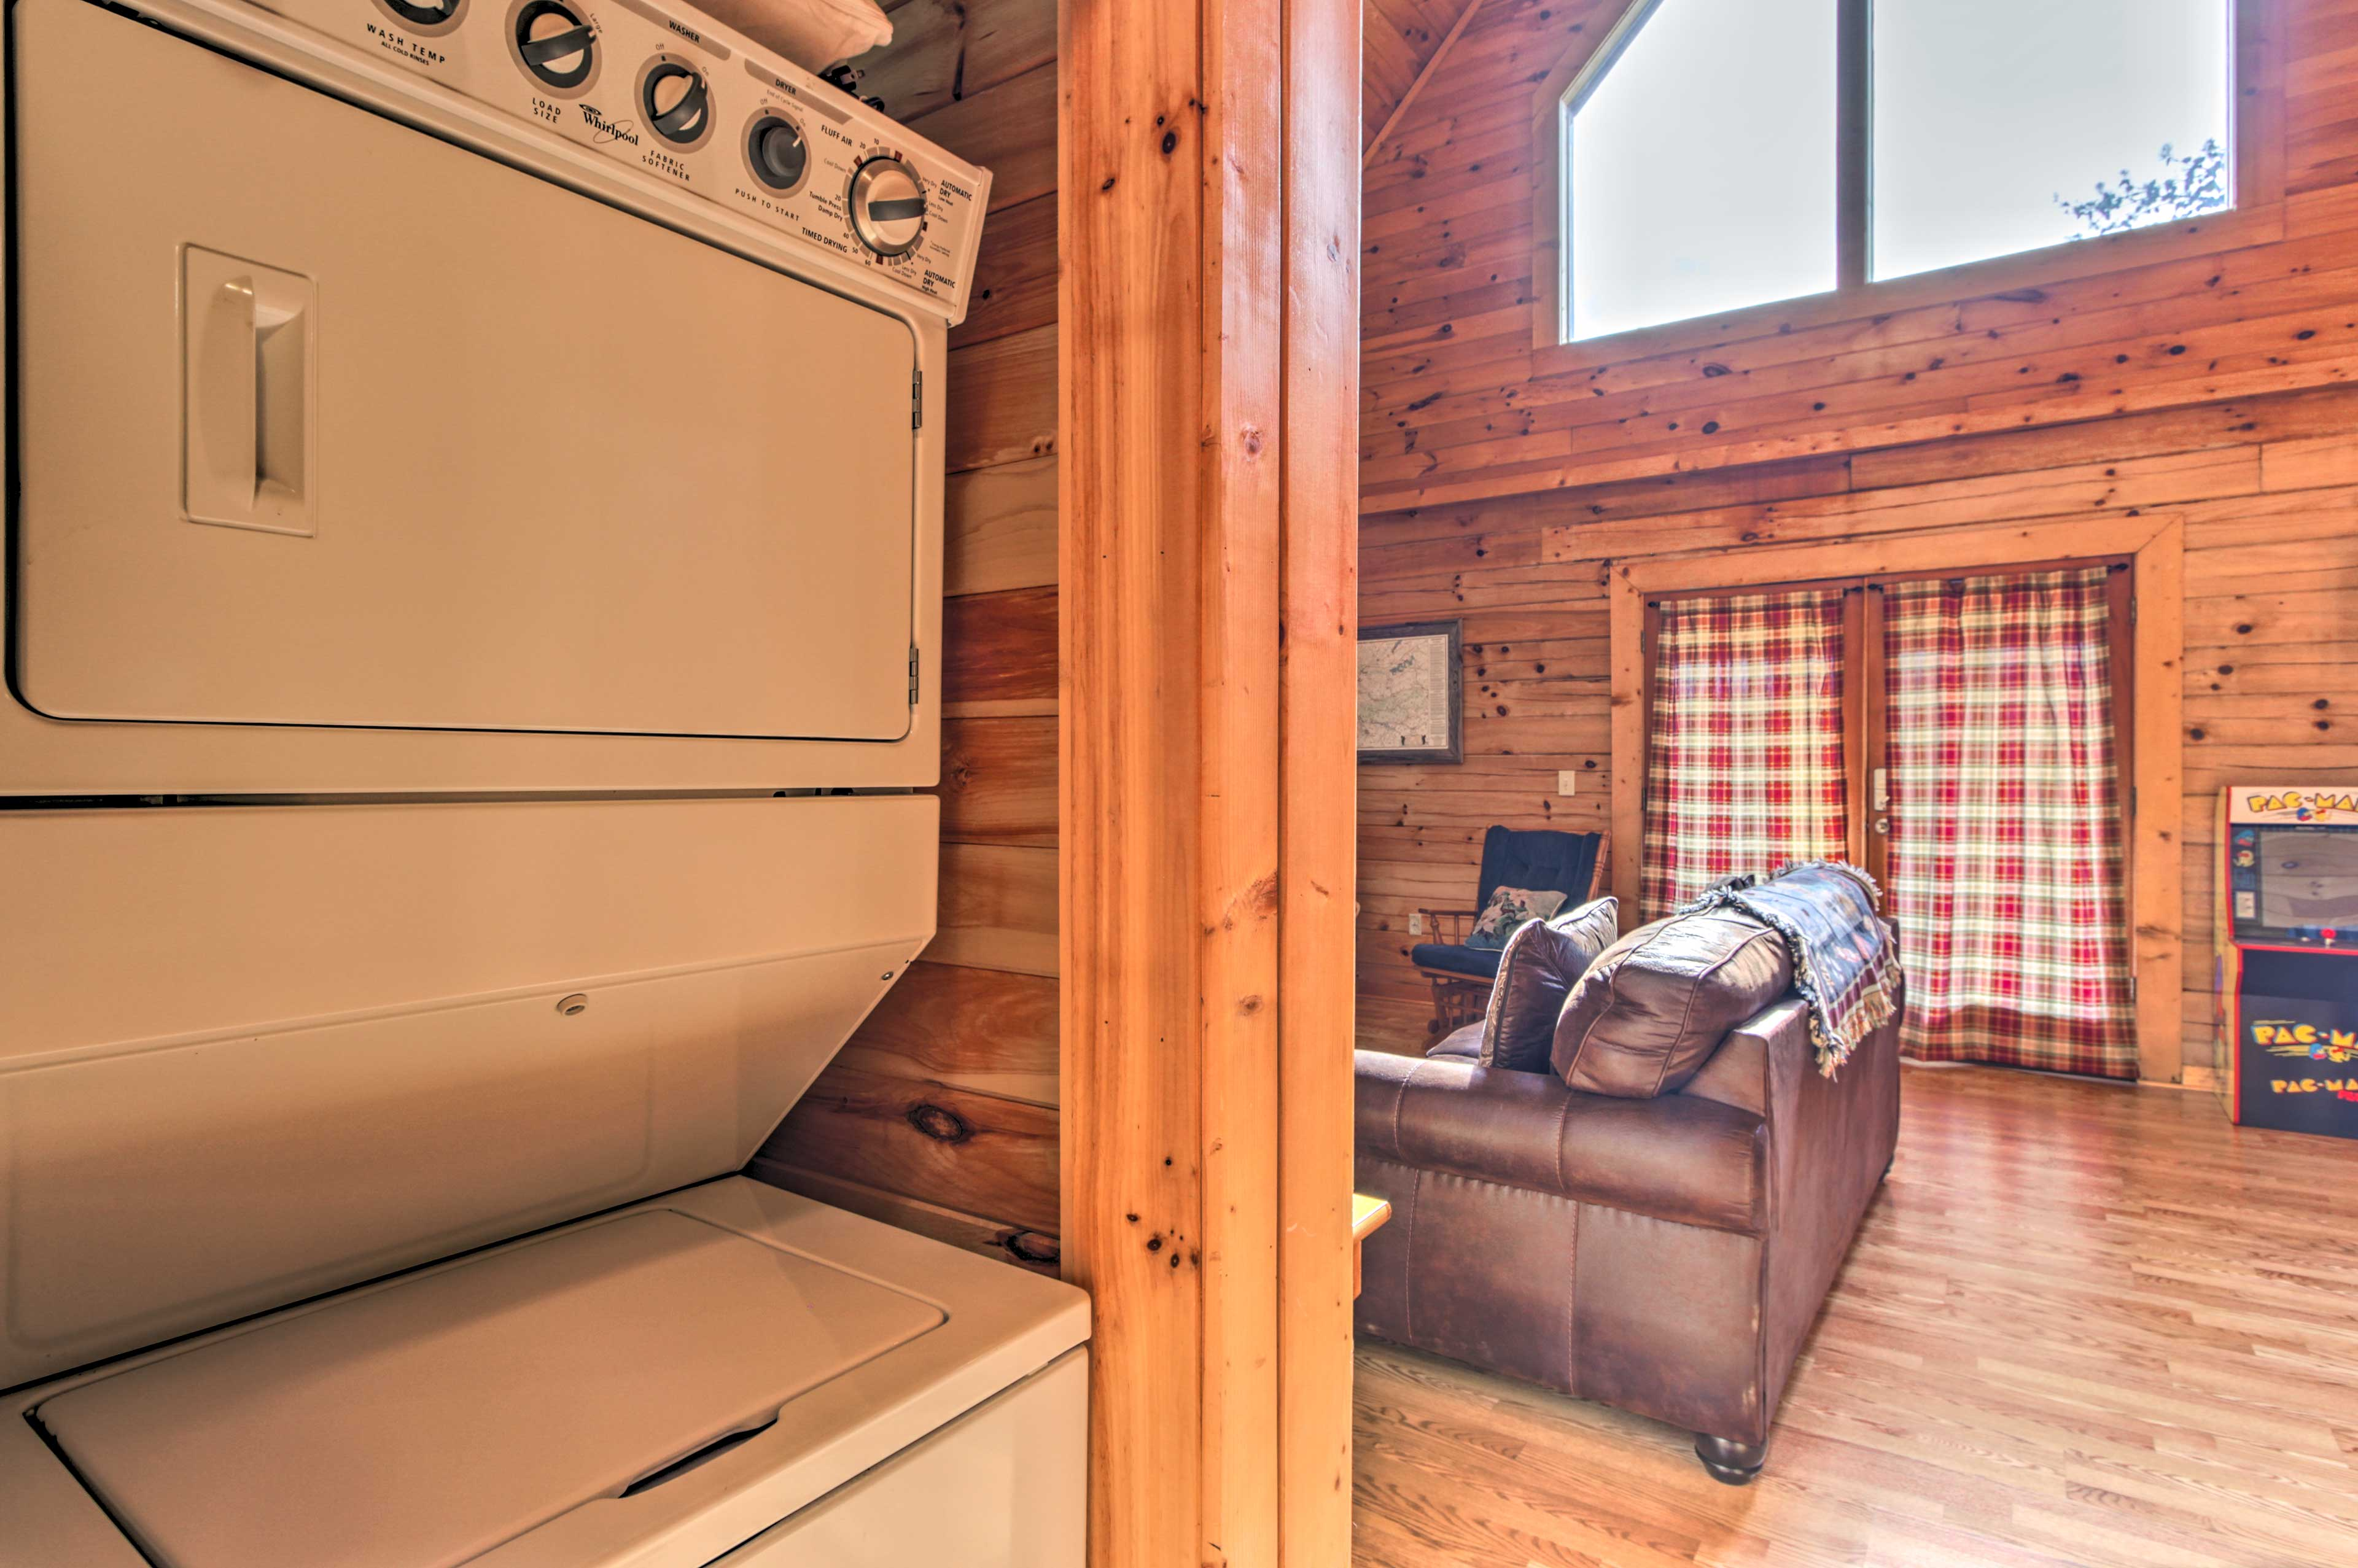 The laundry room is located off the living room.